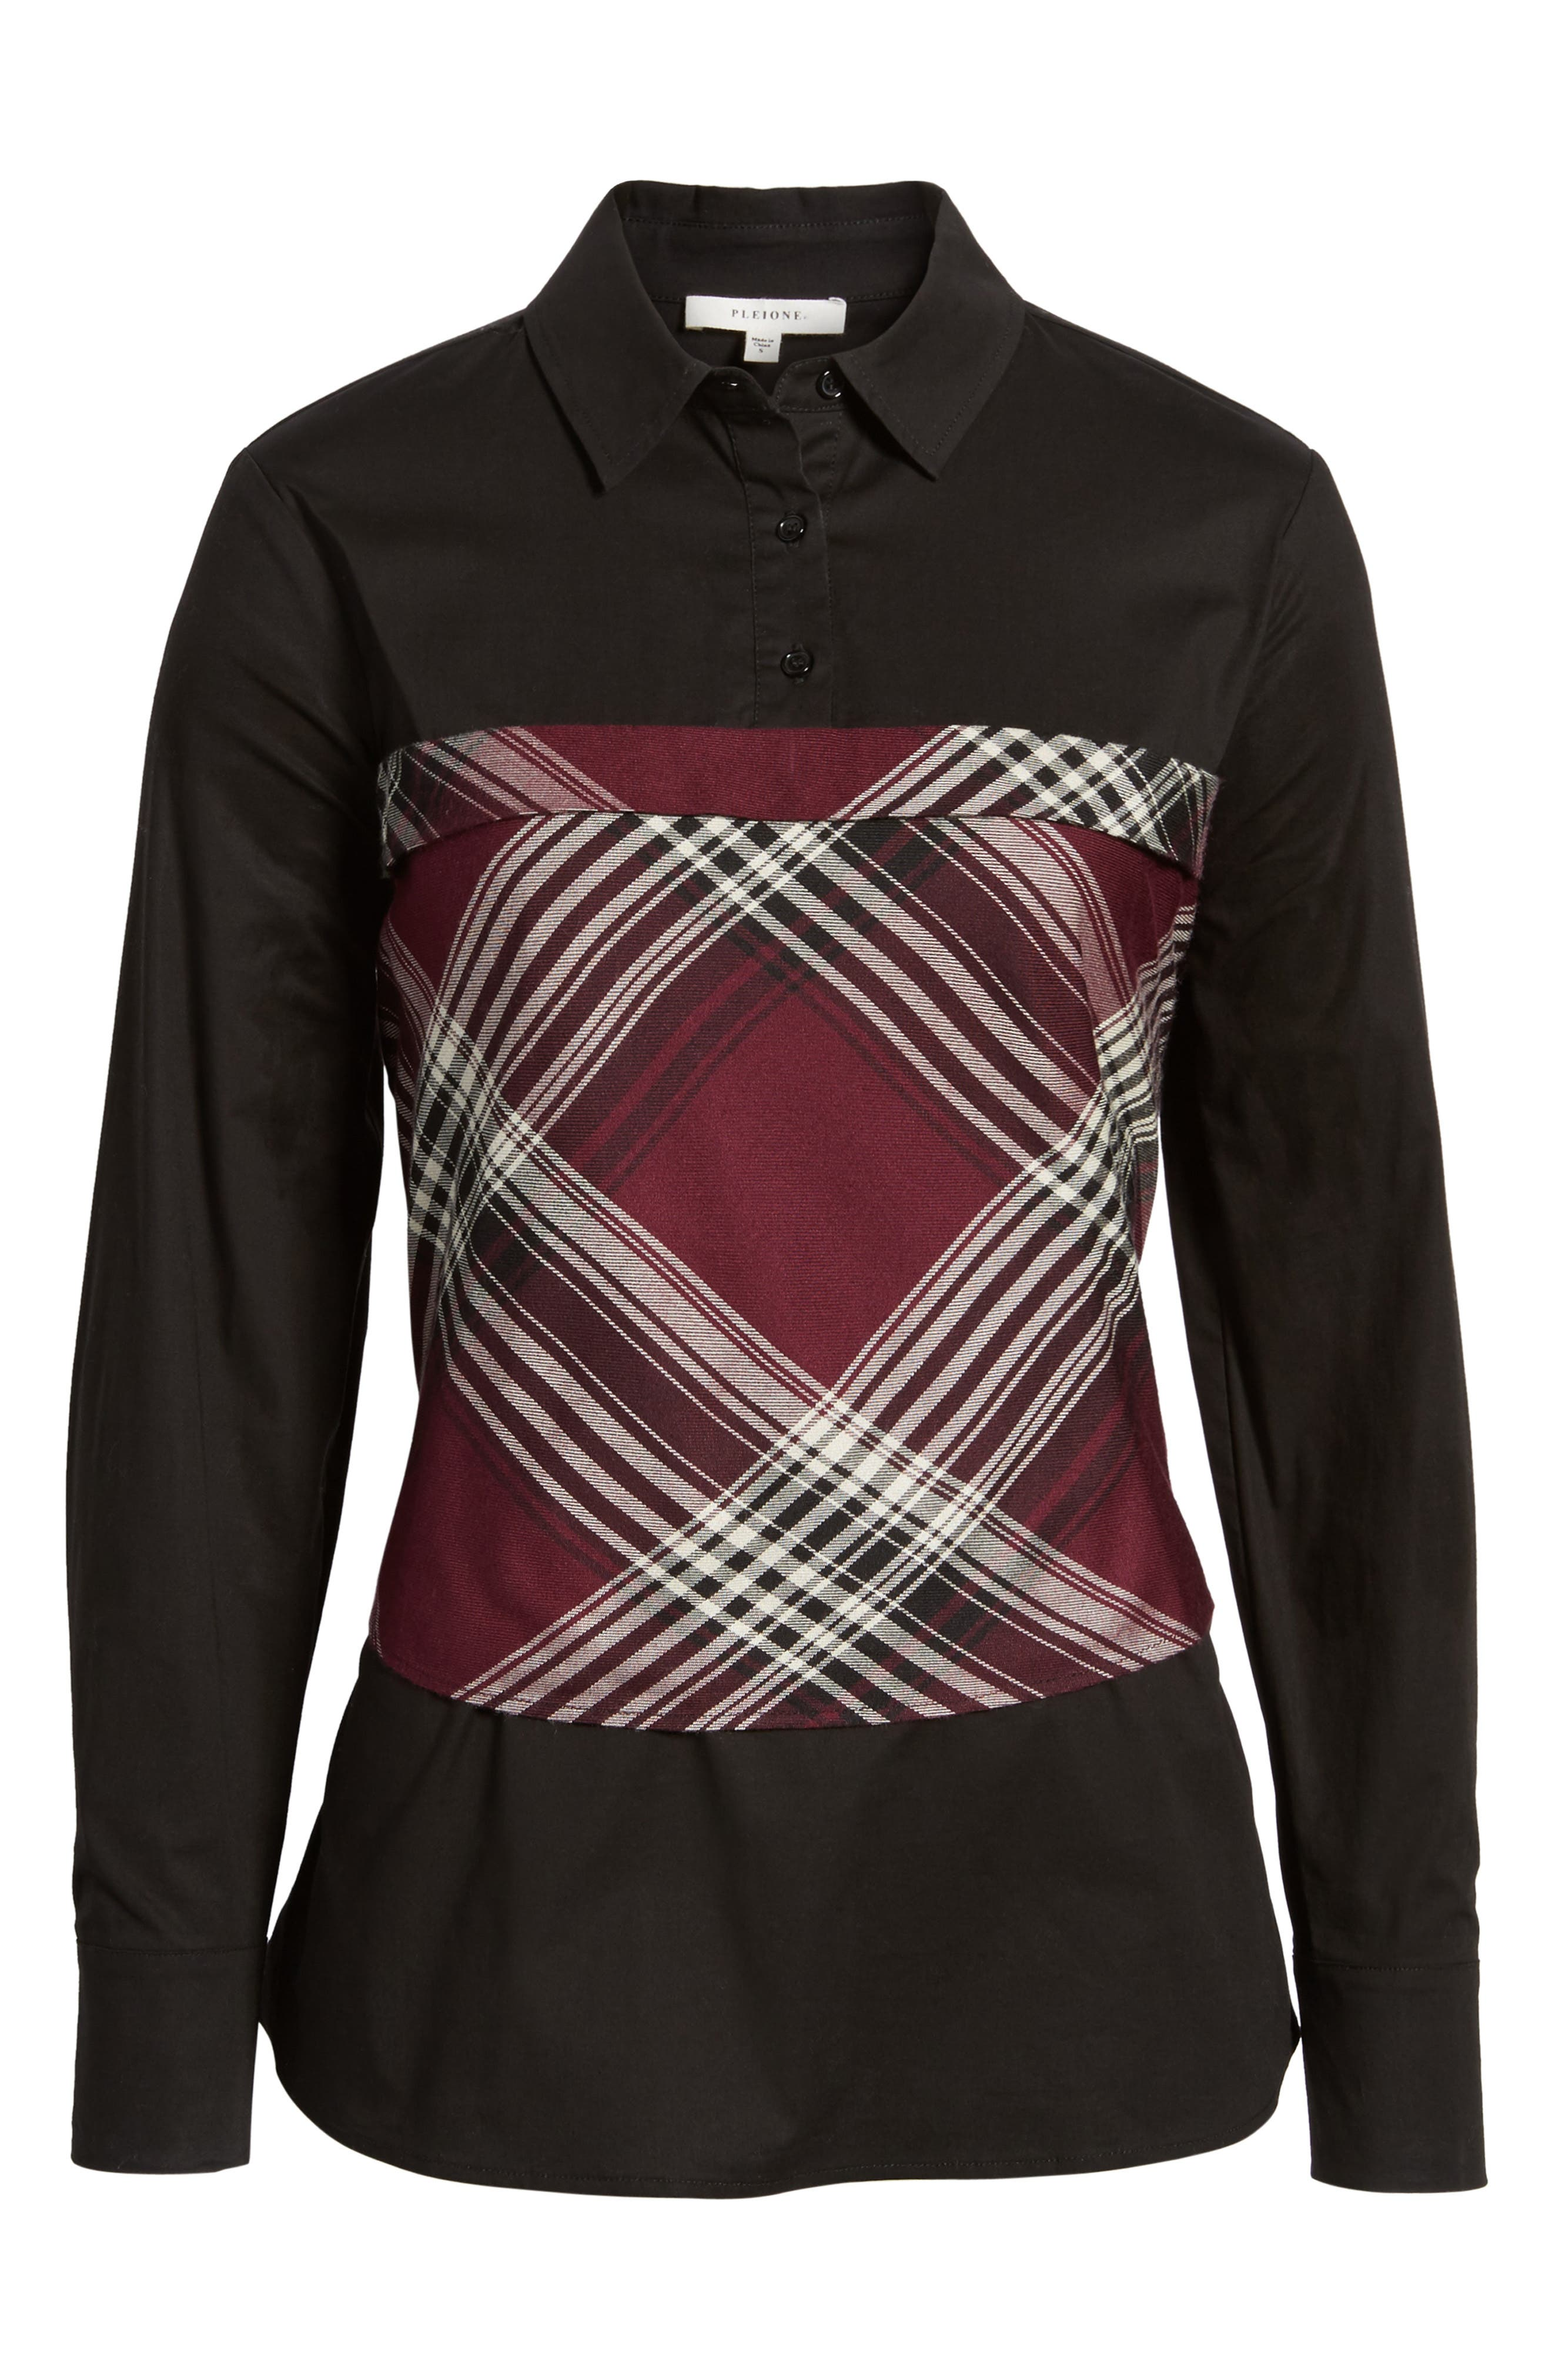 Plaid Corset Shirt,                             Alternate thumbnail 6, color,                             Wine/ Black Plaid/ Black